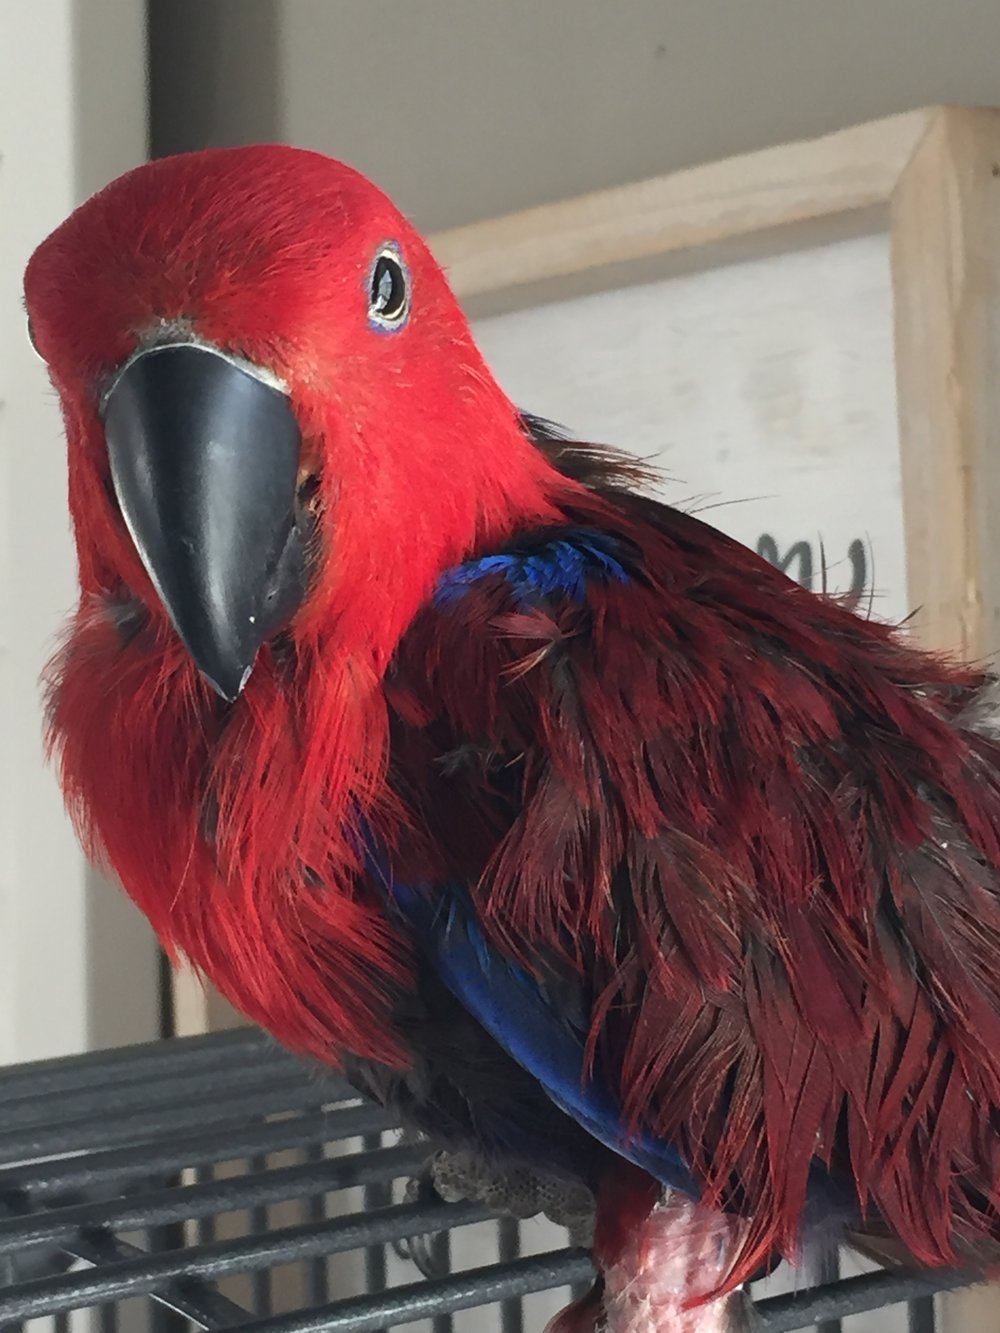 4 year old Lola was adopted in March 2019! Eclectus parrots have very specific dietary needs and live for 40+ years. They are native to the Solomon Islands, Sumba, New Guinea and nearby islands, northeastern Australia and the Maluku Islands (Moluccas).